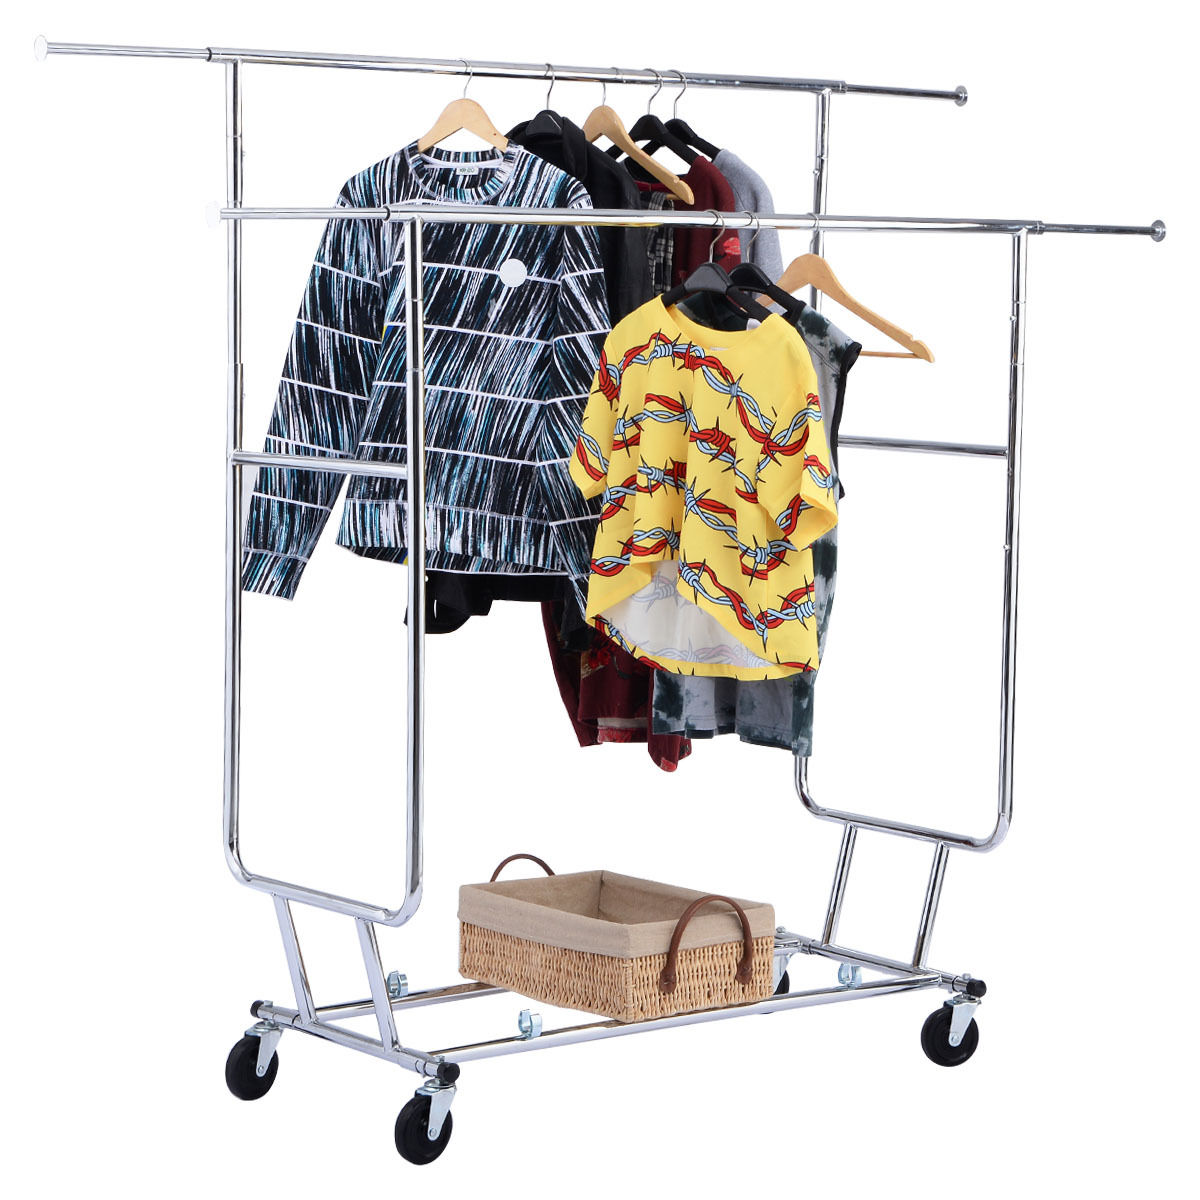 Goplus Commercial Grade Collapsible Clothes Hanger Rolling